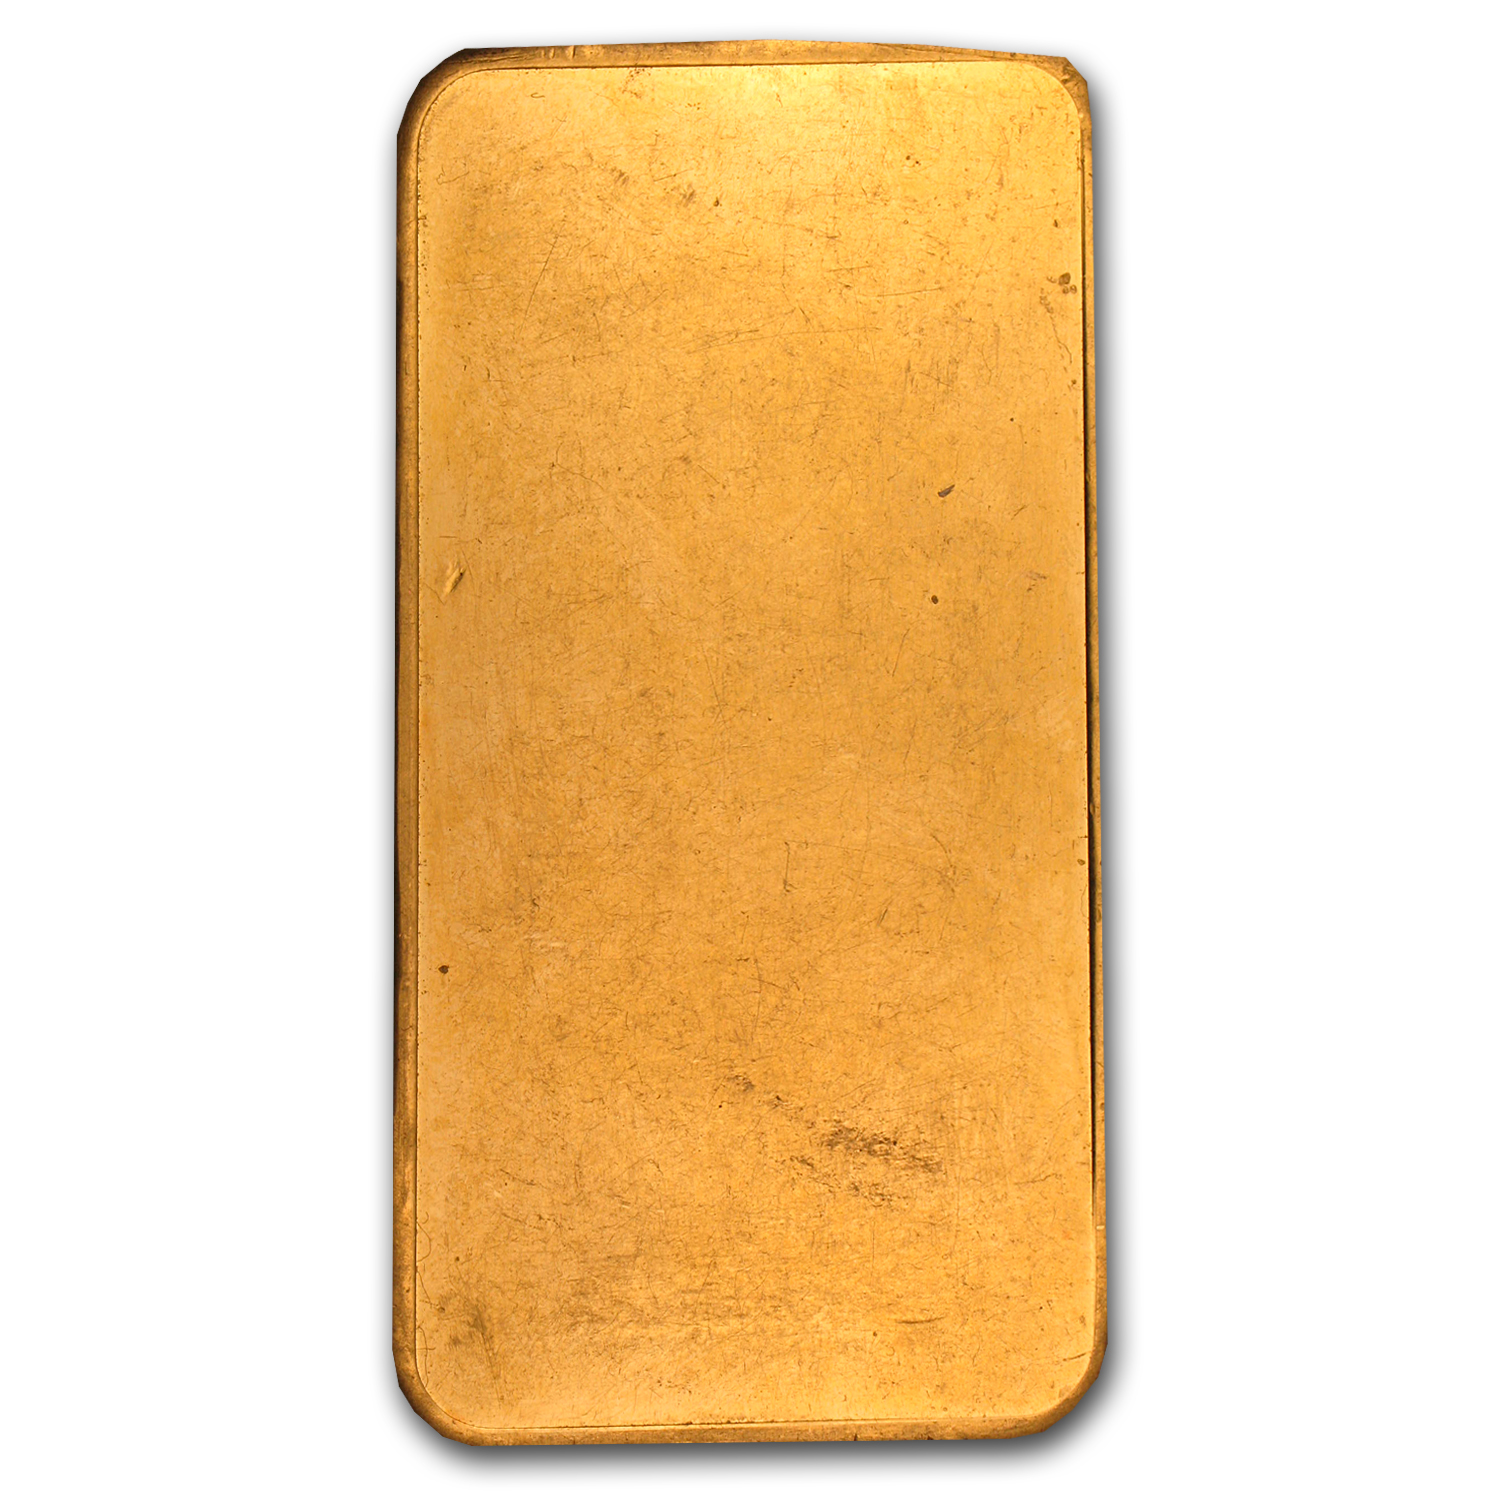 10 oz Gold Bars - Engelhard (Tall, Maple/Smooth)